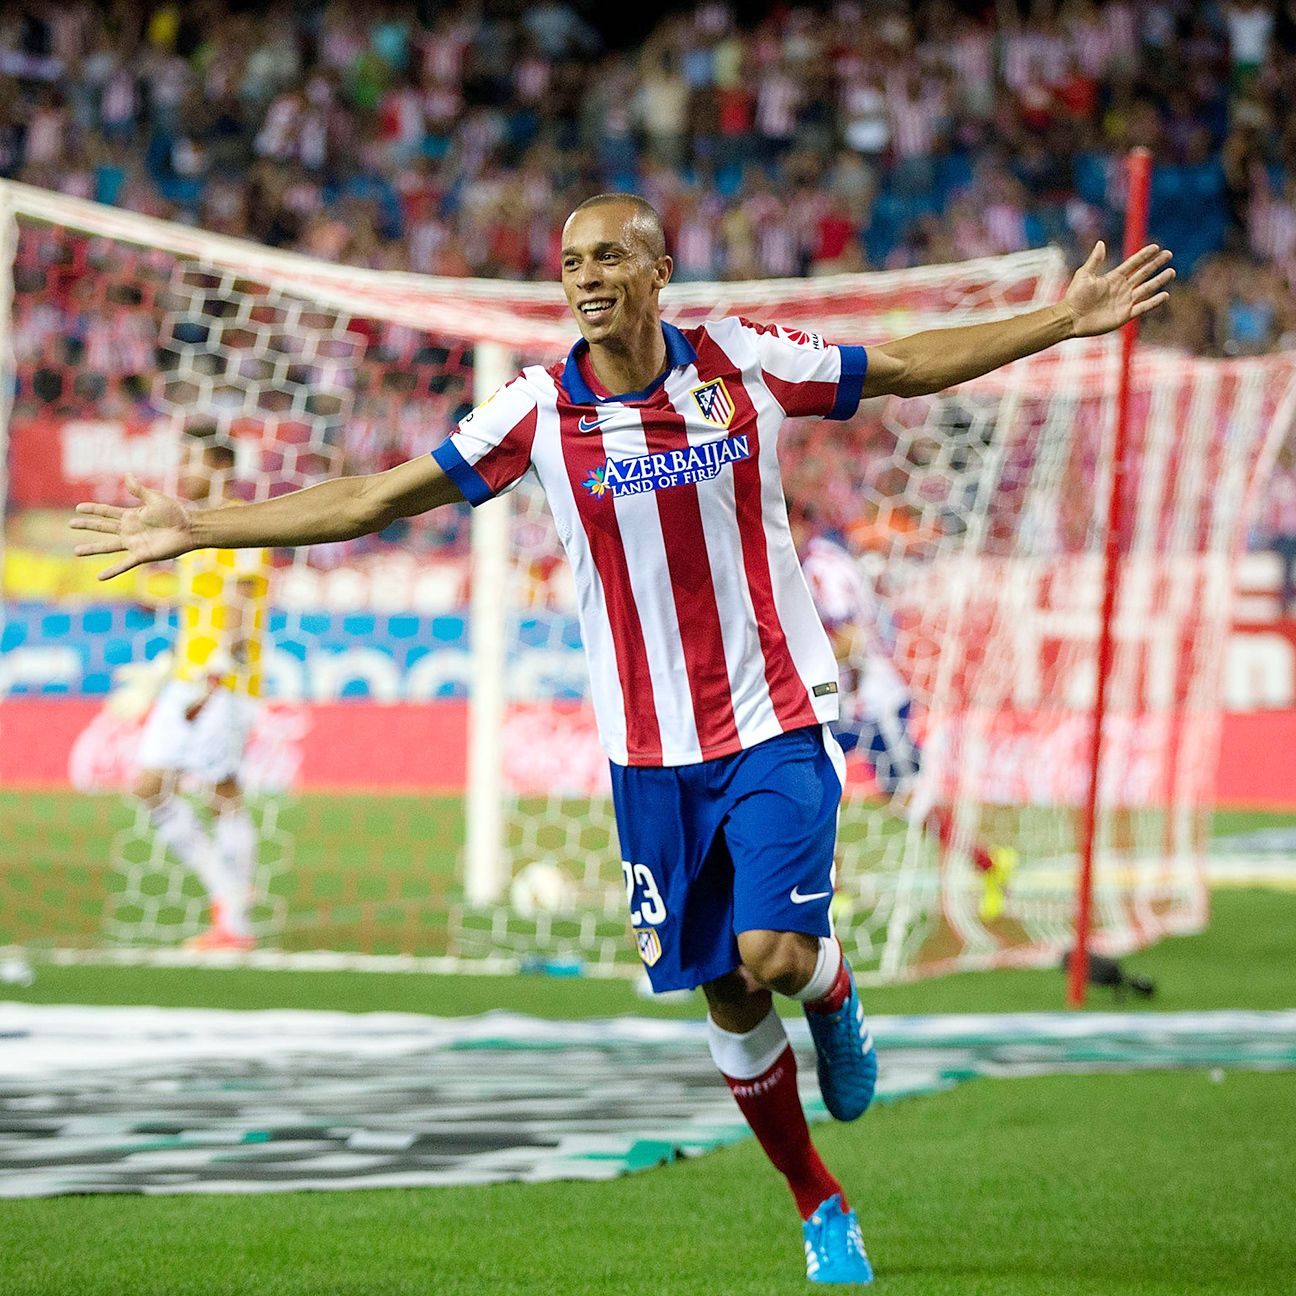 He's been a stalwart in Atletico's defence and has scored some big goals for the club, but this winter may be the right time to sell centre back Joao Miranda.